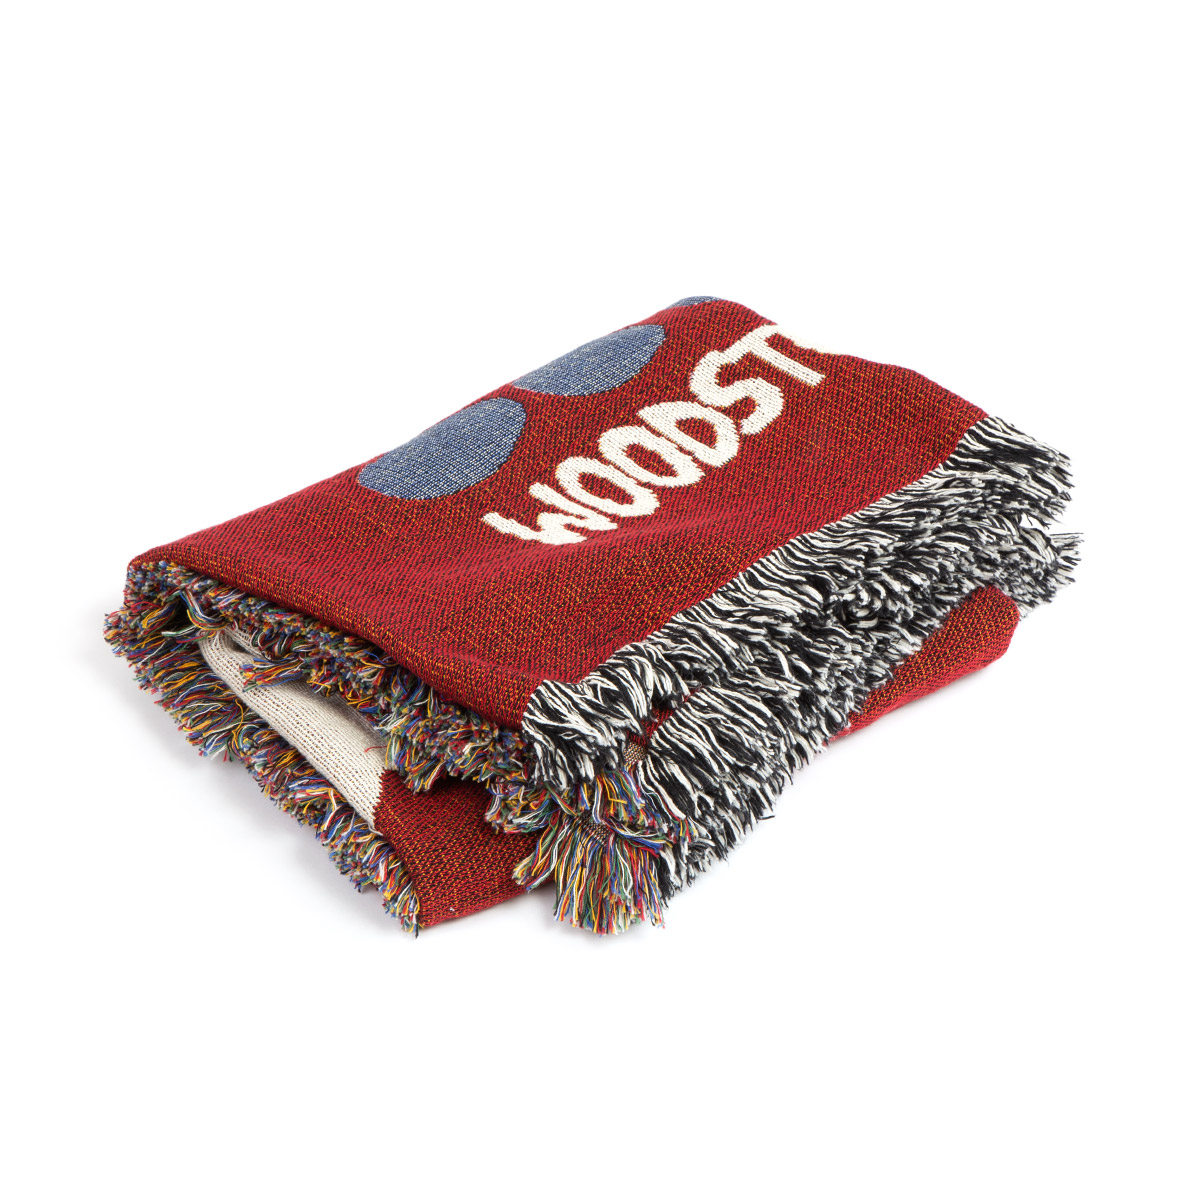 Woodstock Logo Throw Blanket